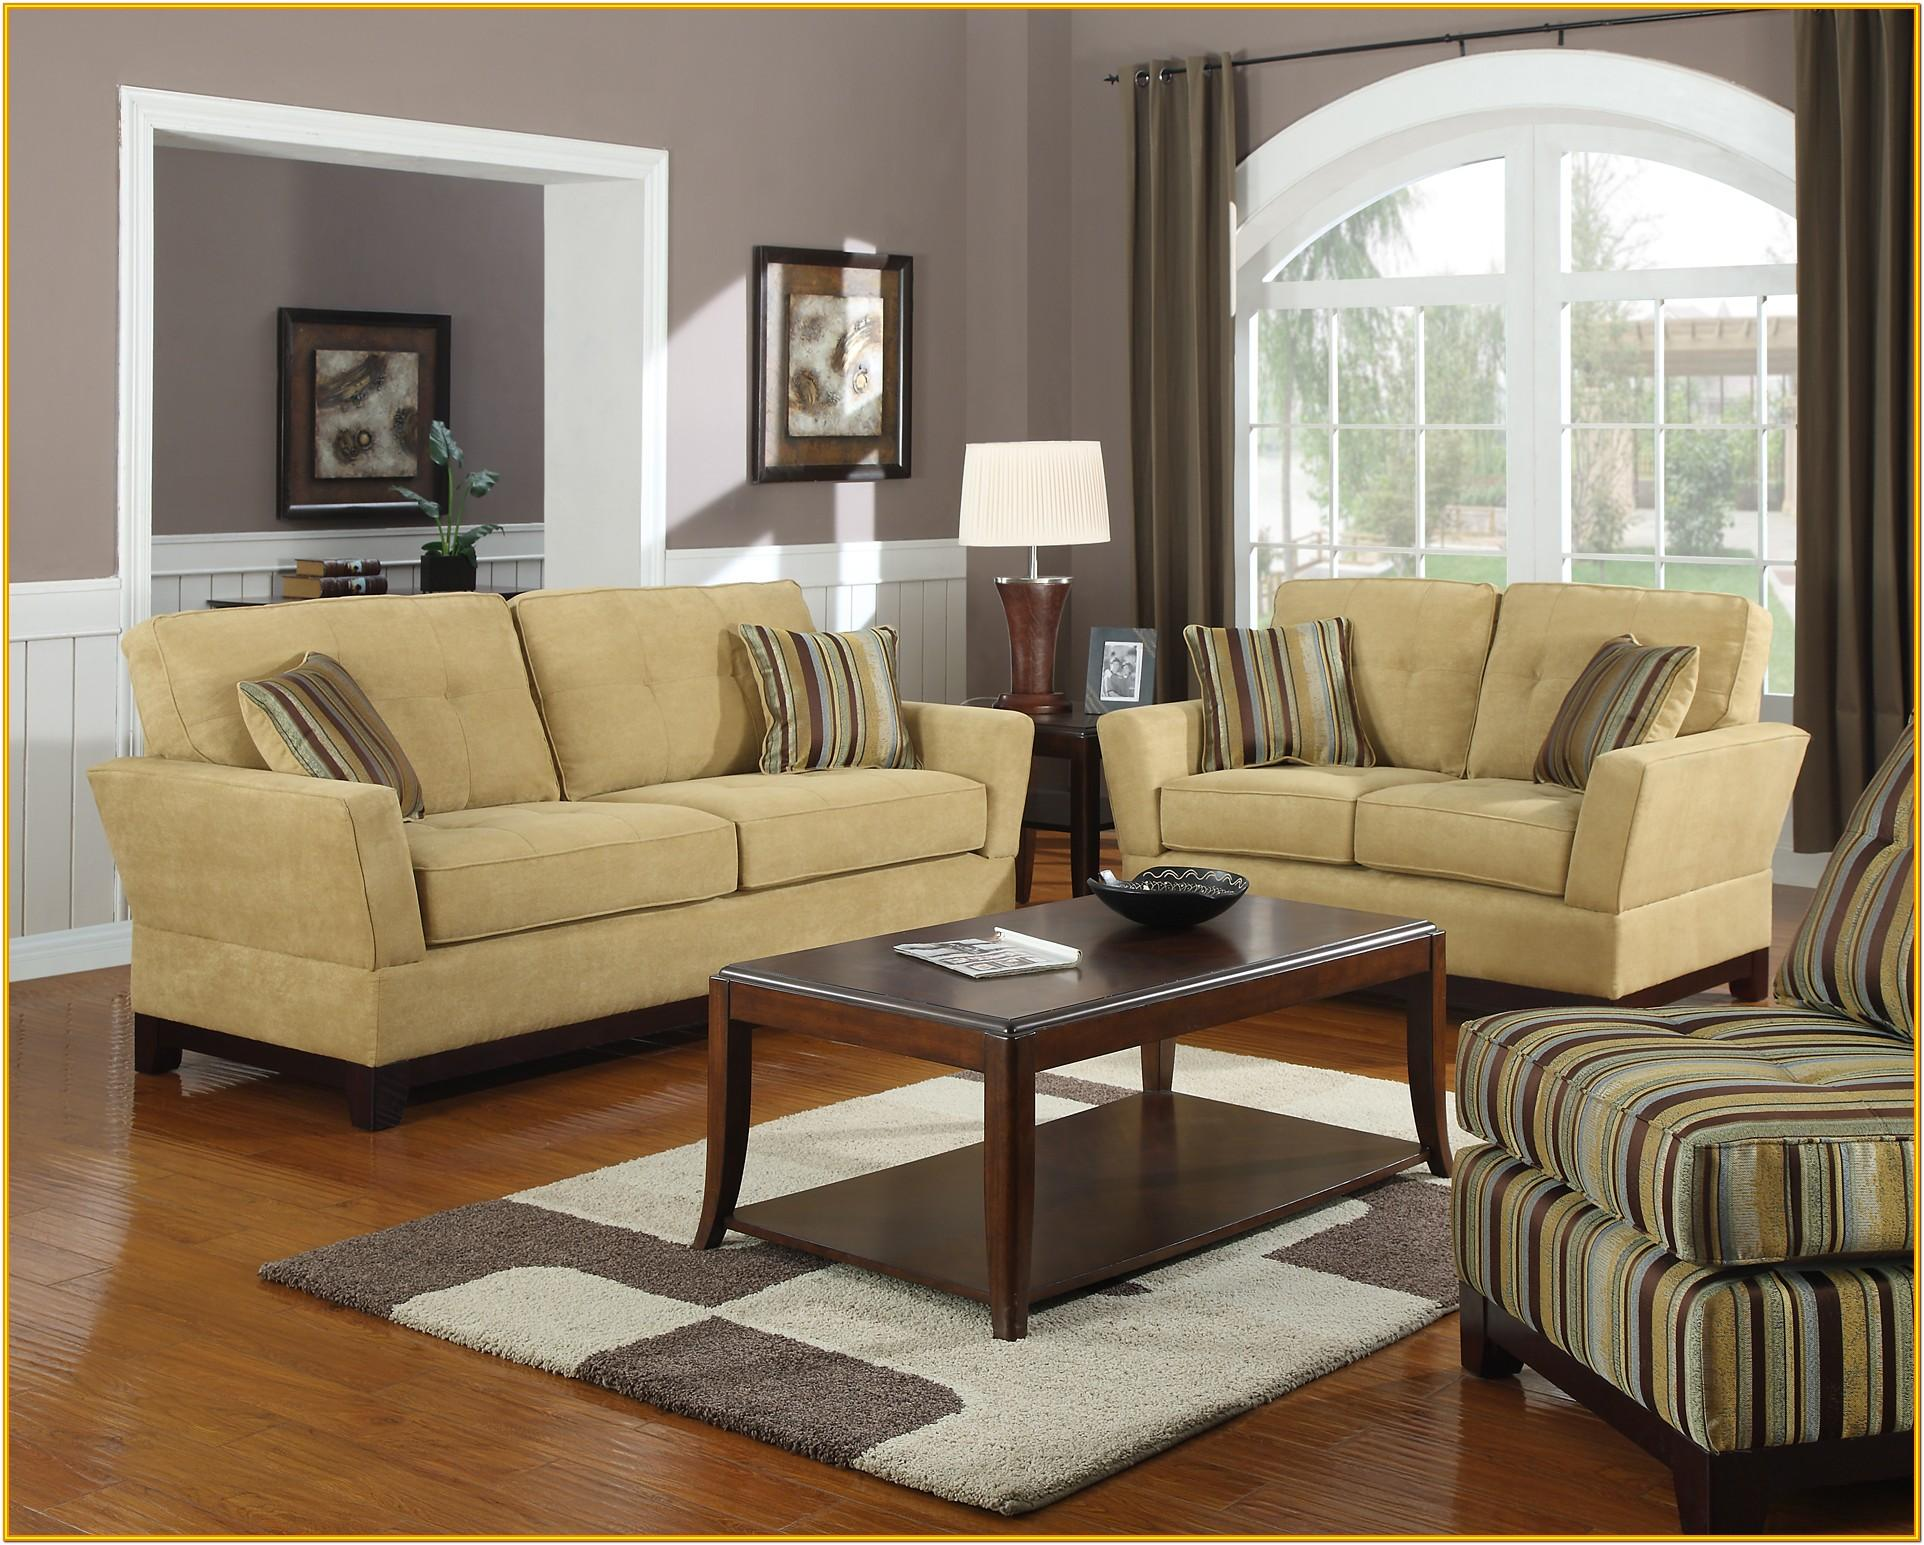 Decorating Ideas Small Living Room